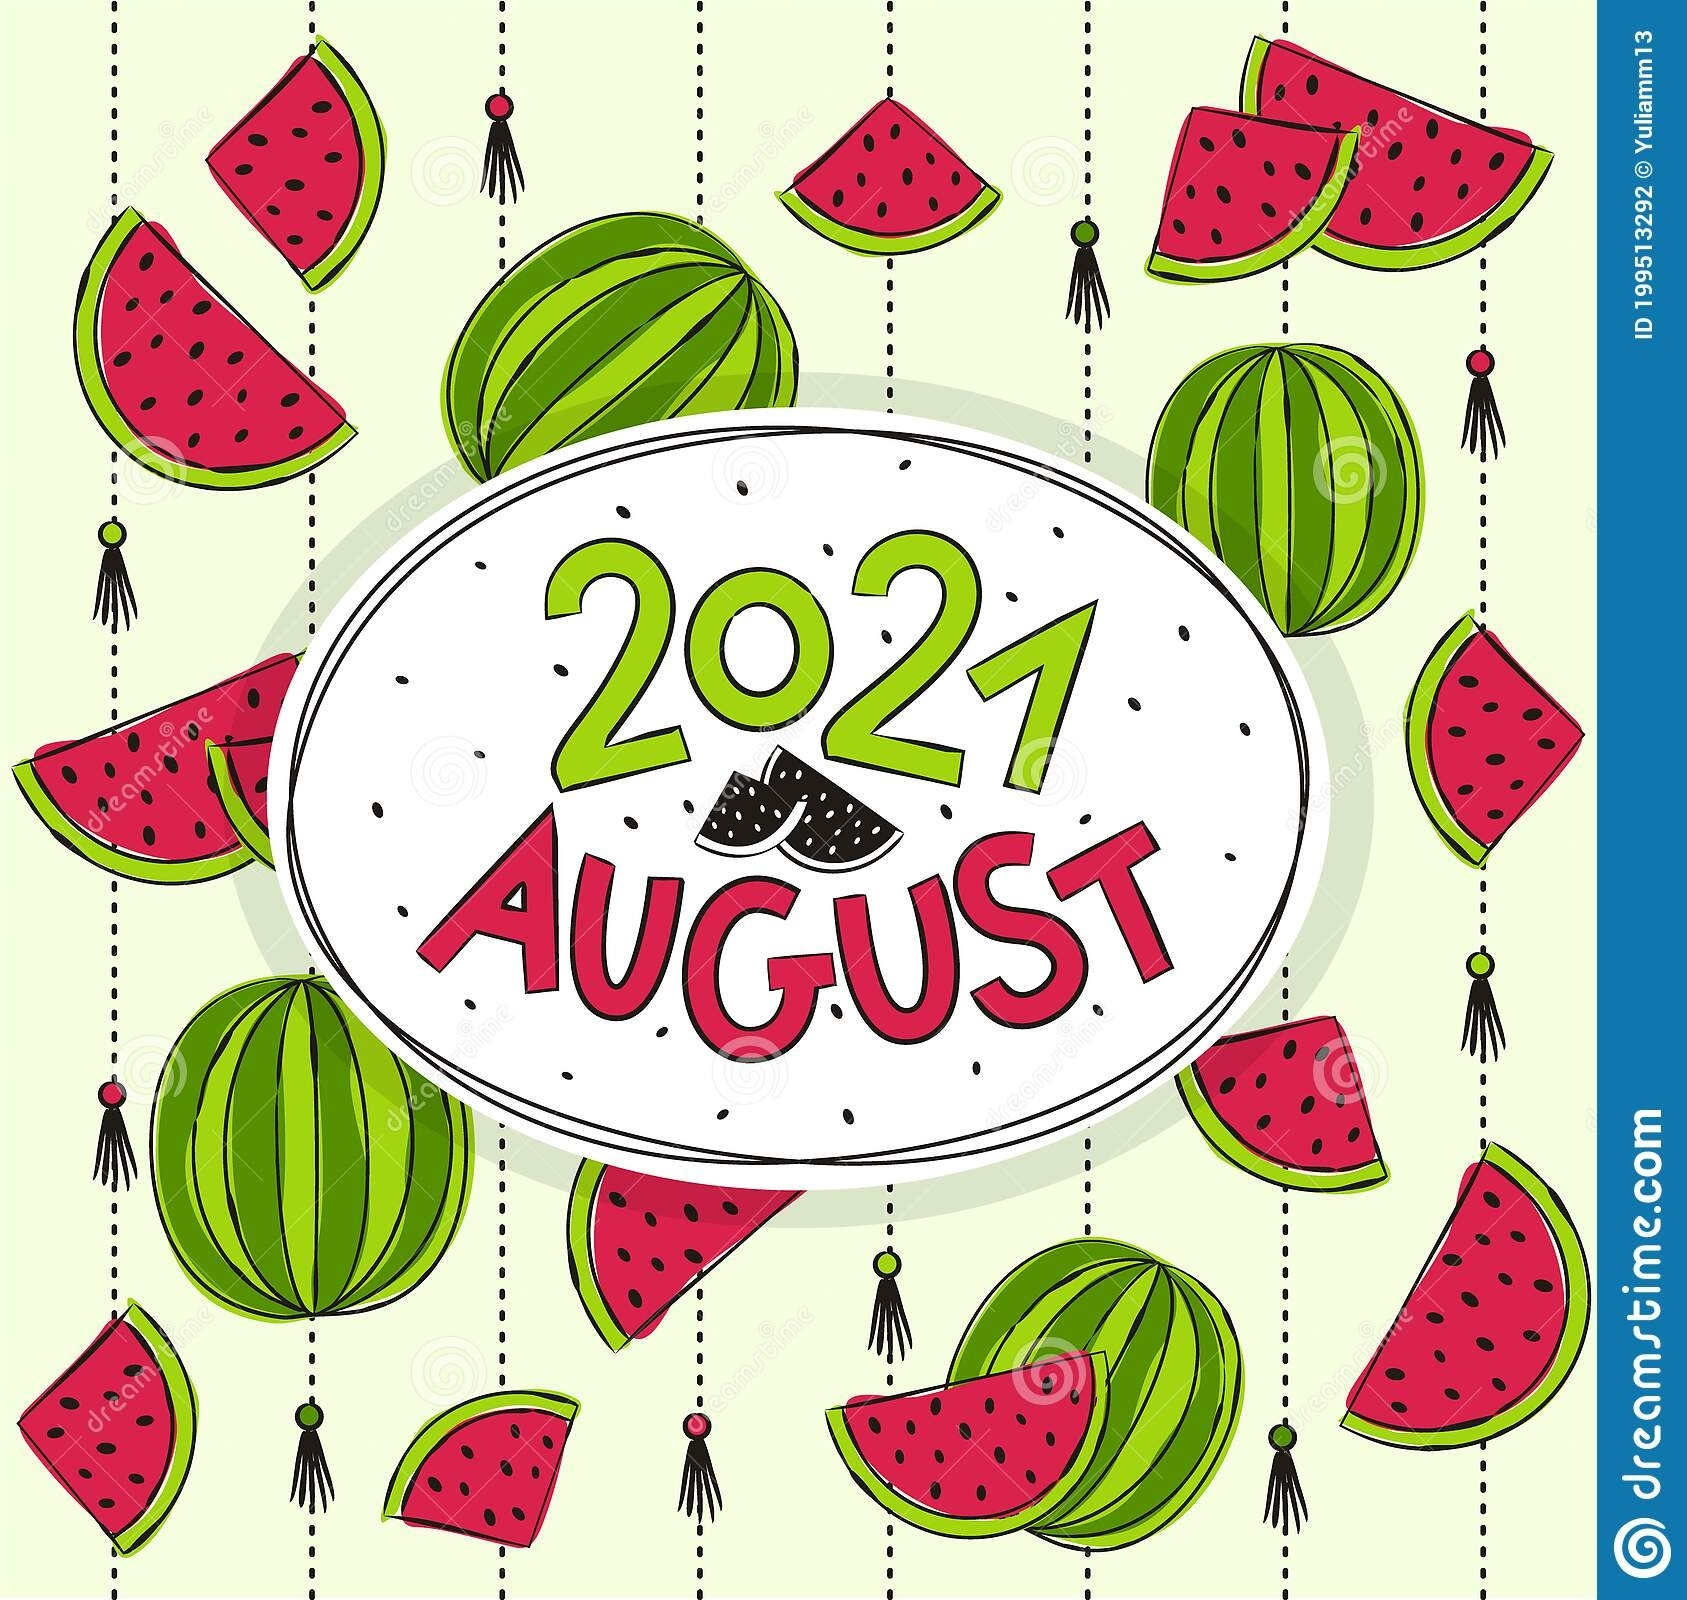 Take Clip Art For August 2021